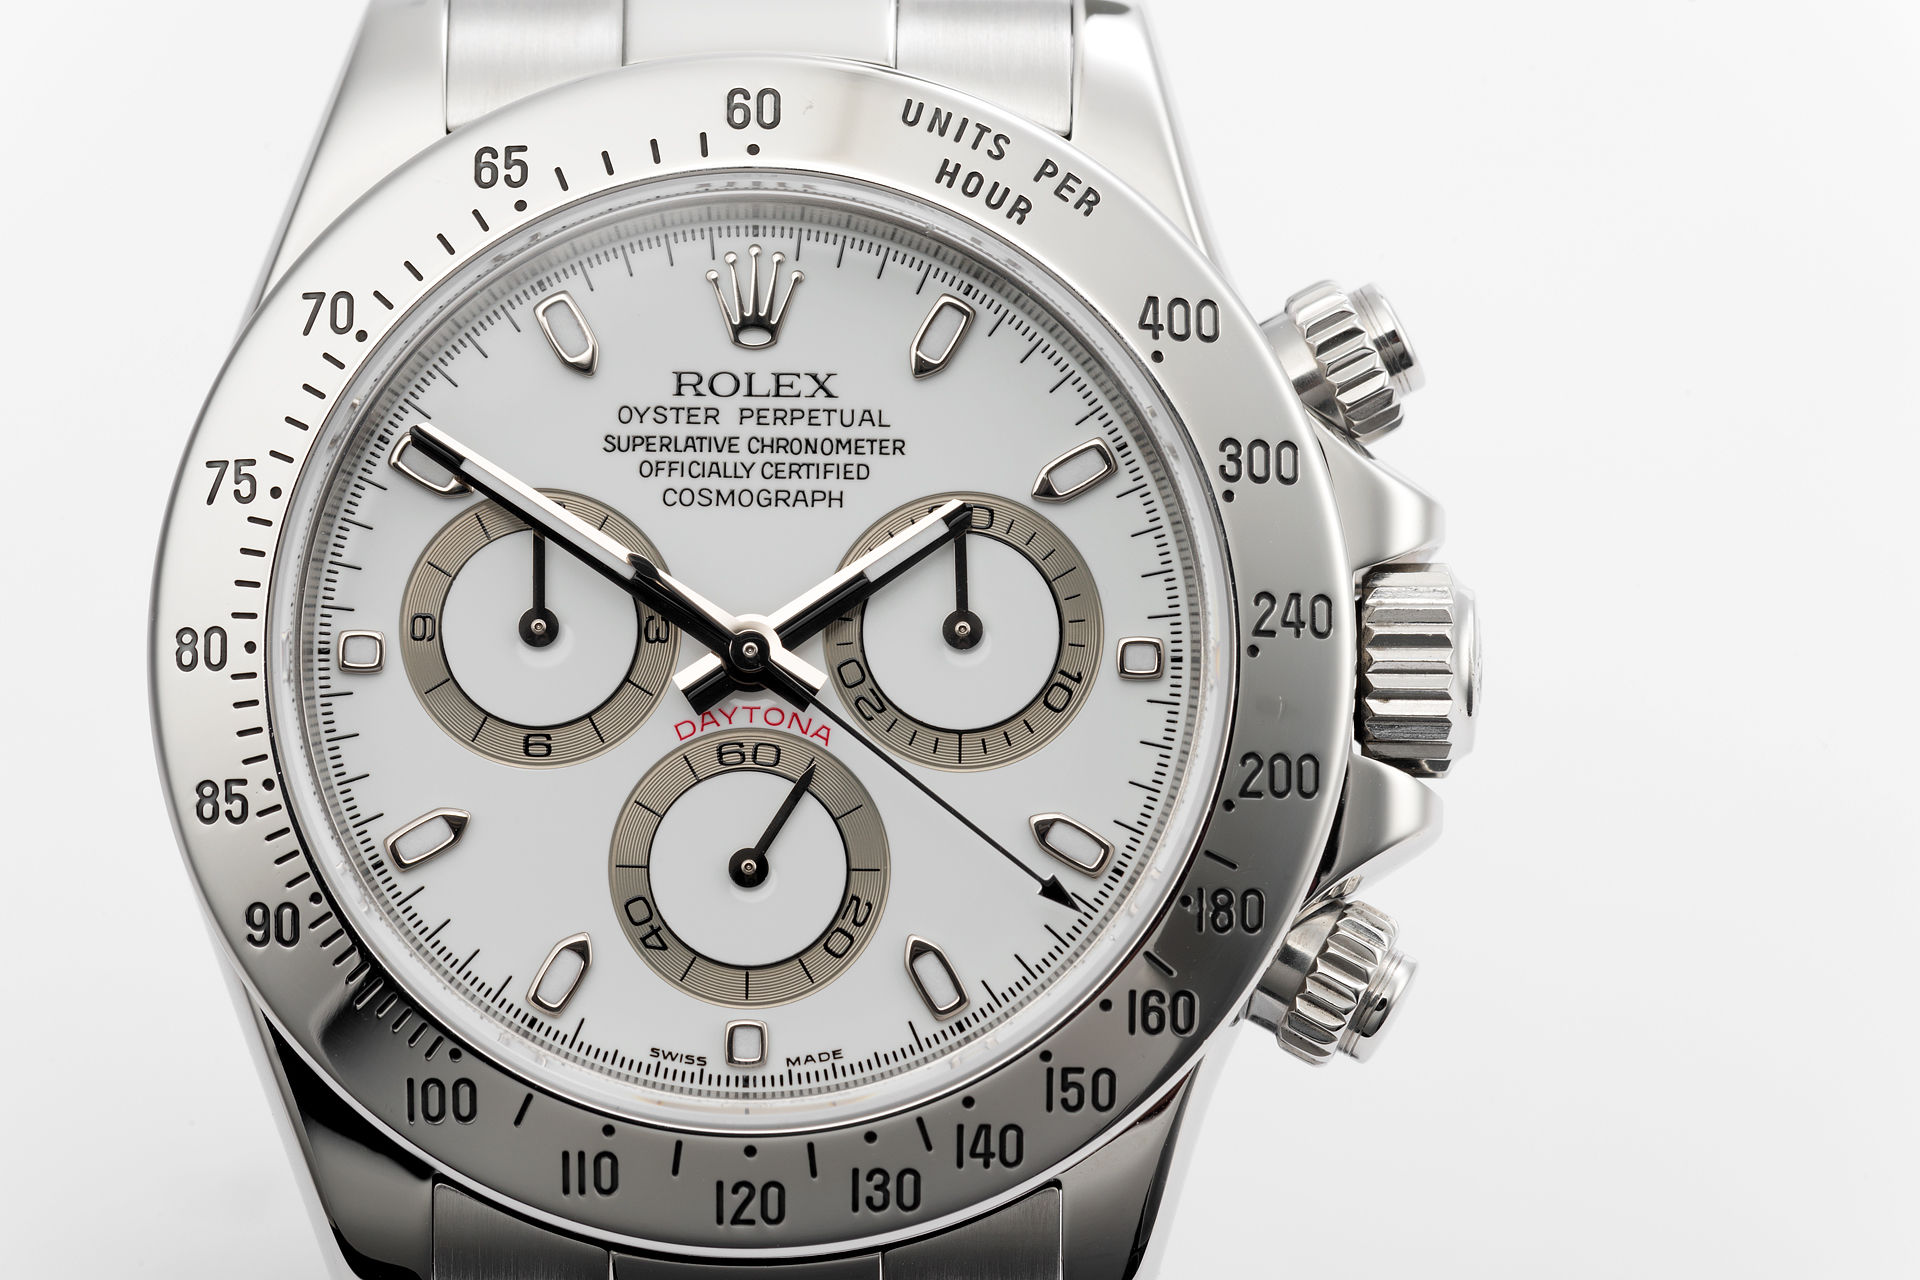 ref 116520 | Discontinued Model 'Full Set' | Rolex Cosmograph Daytona